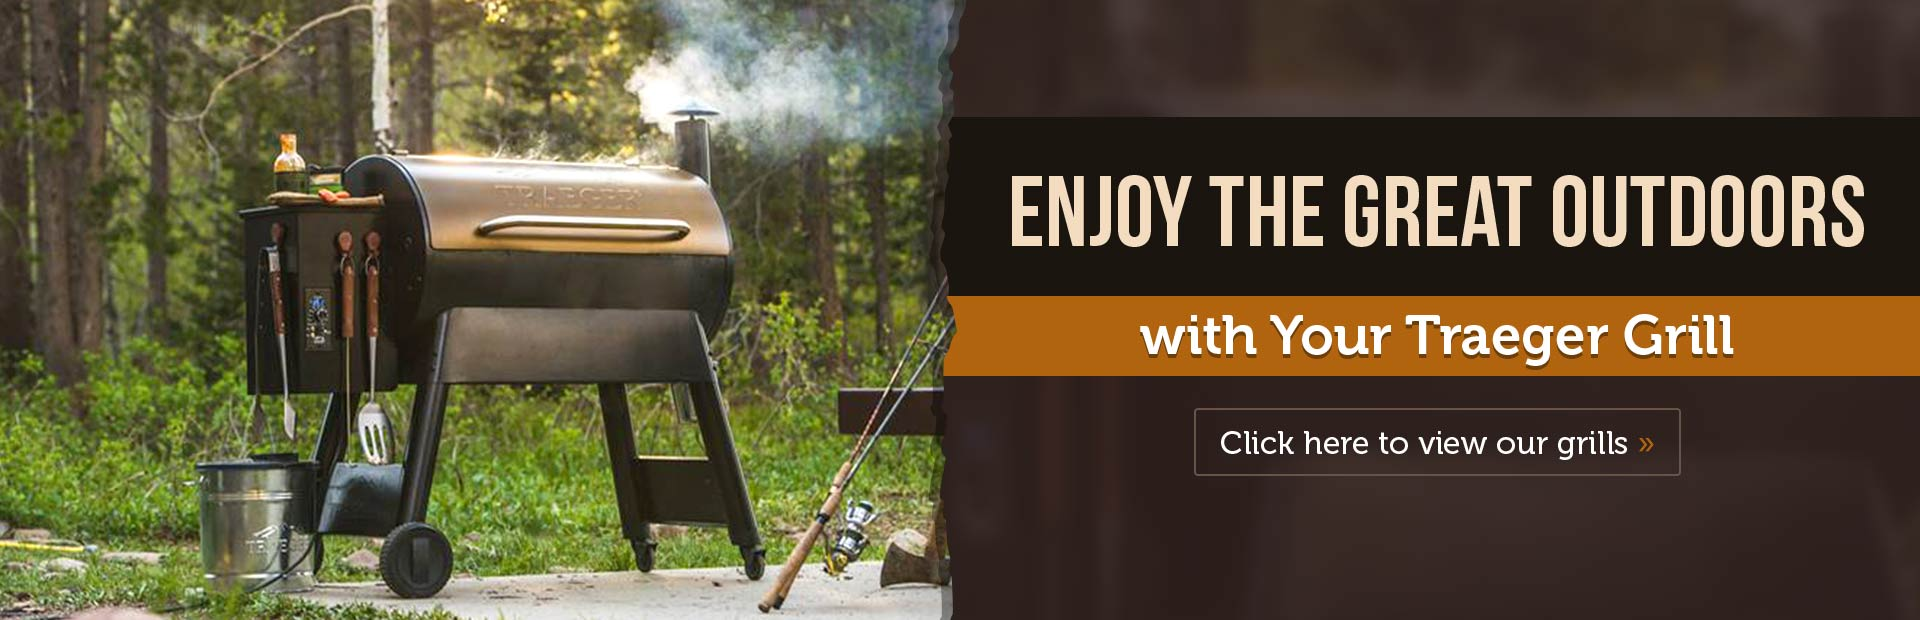 Enjoy the great outdoors with your Traeger grill!